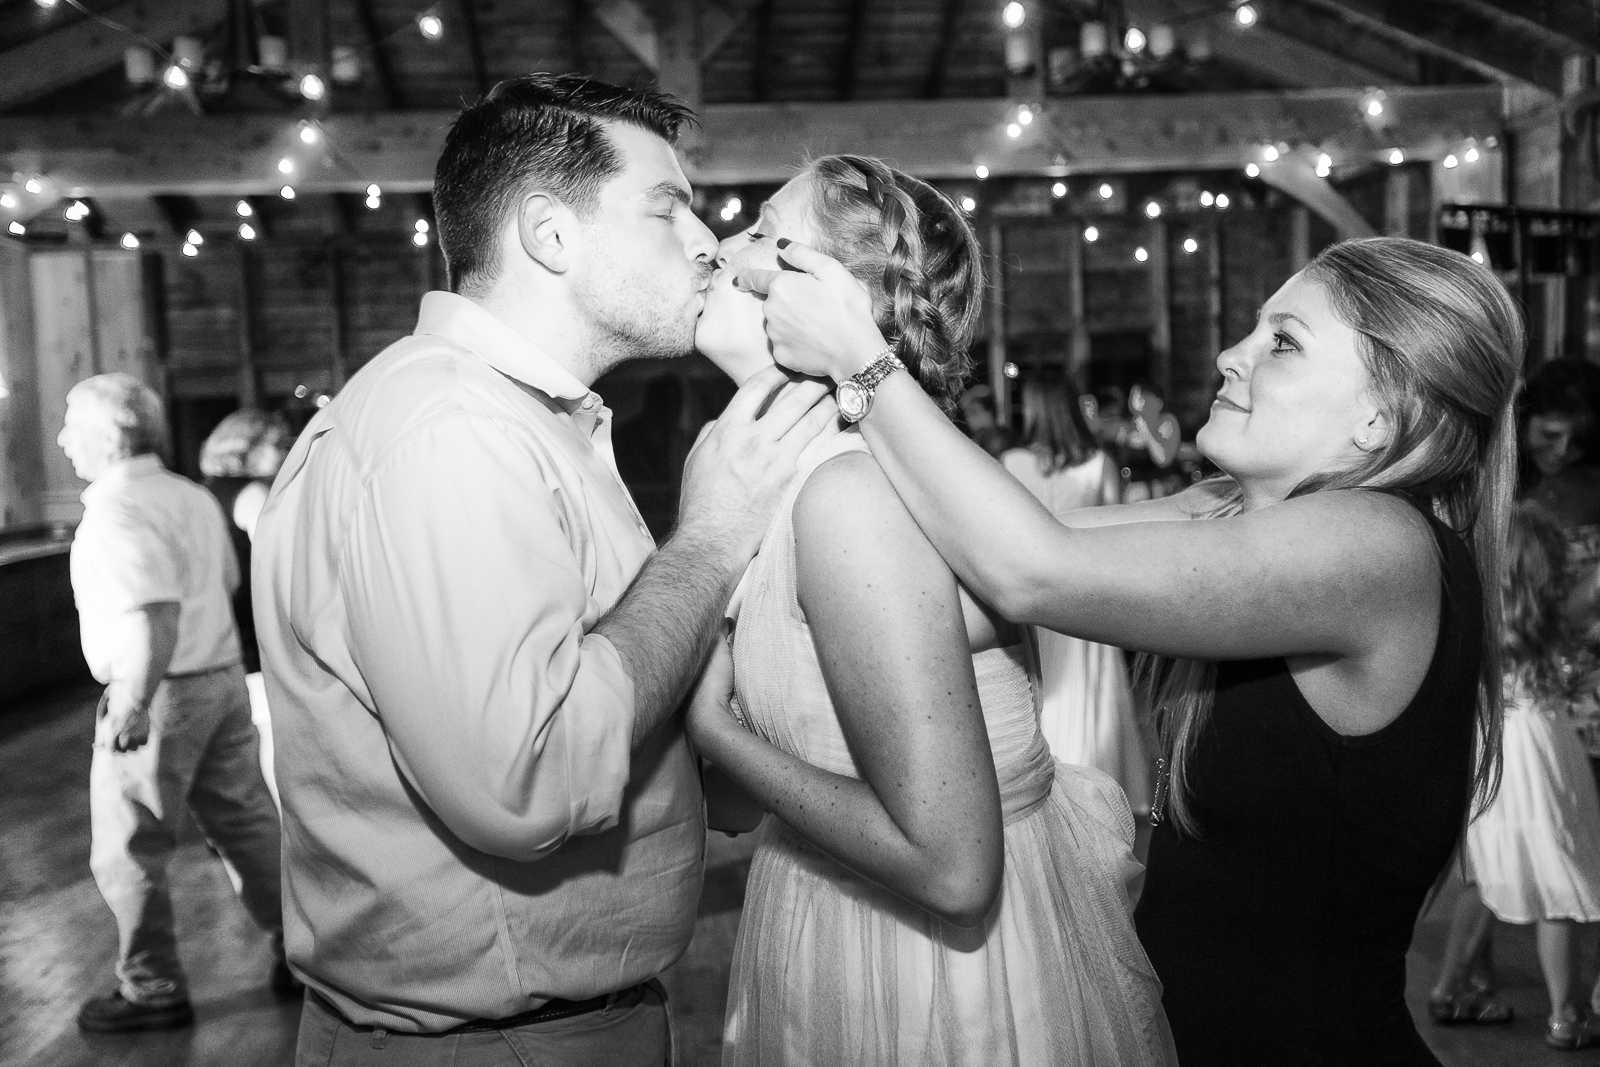 A wedding guest sneaks up on the newlyweds mid-kiss.